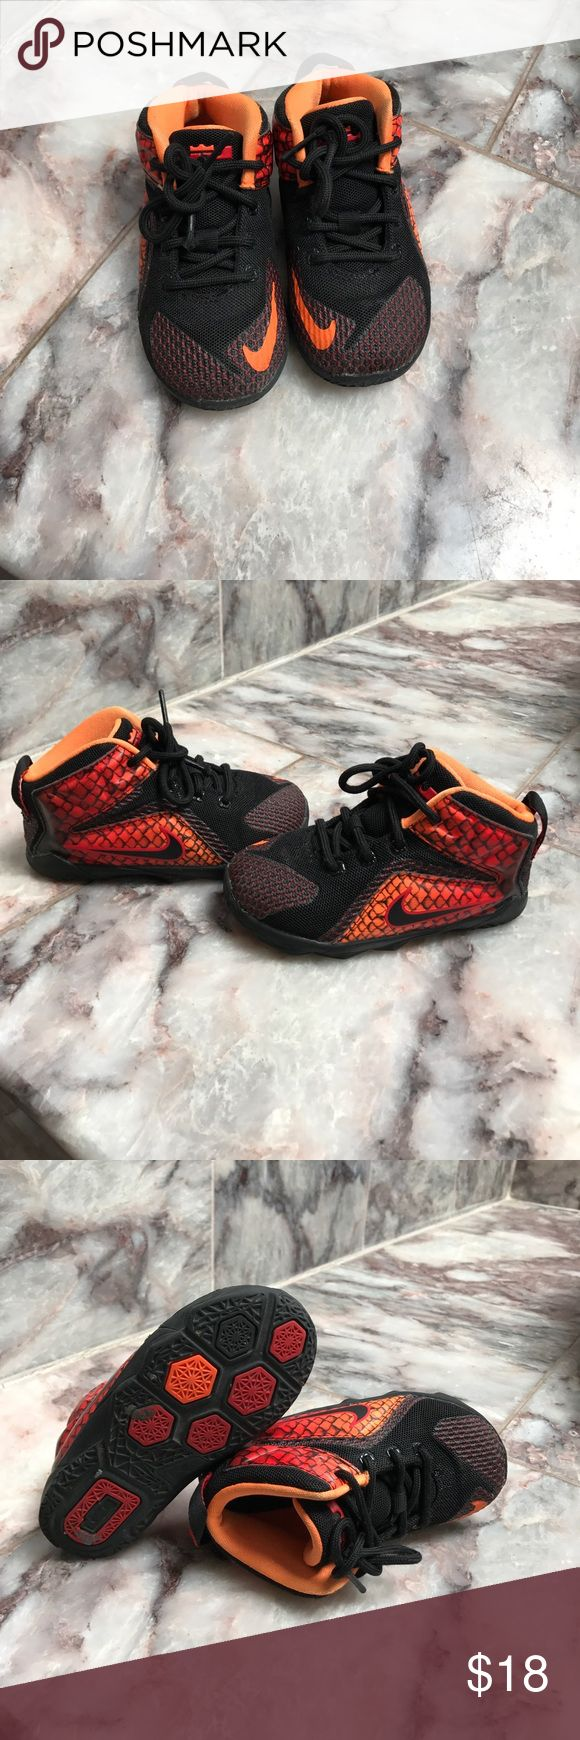 Toddler athletic shoes Orange/Black Lebron James Shoes Sneakers